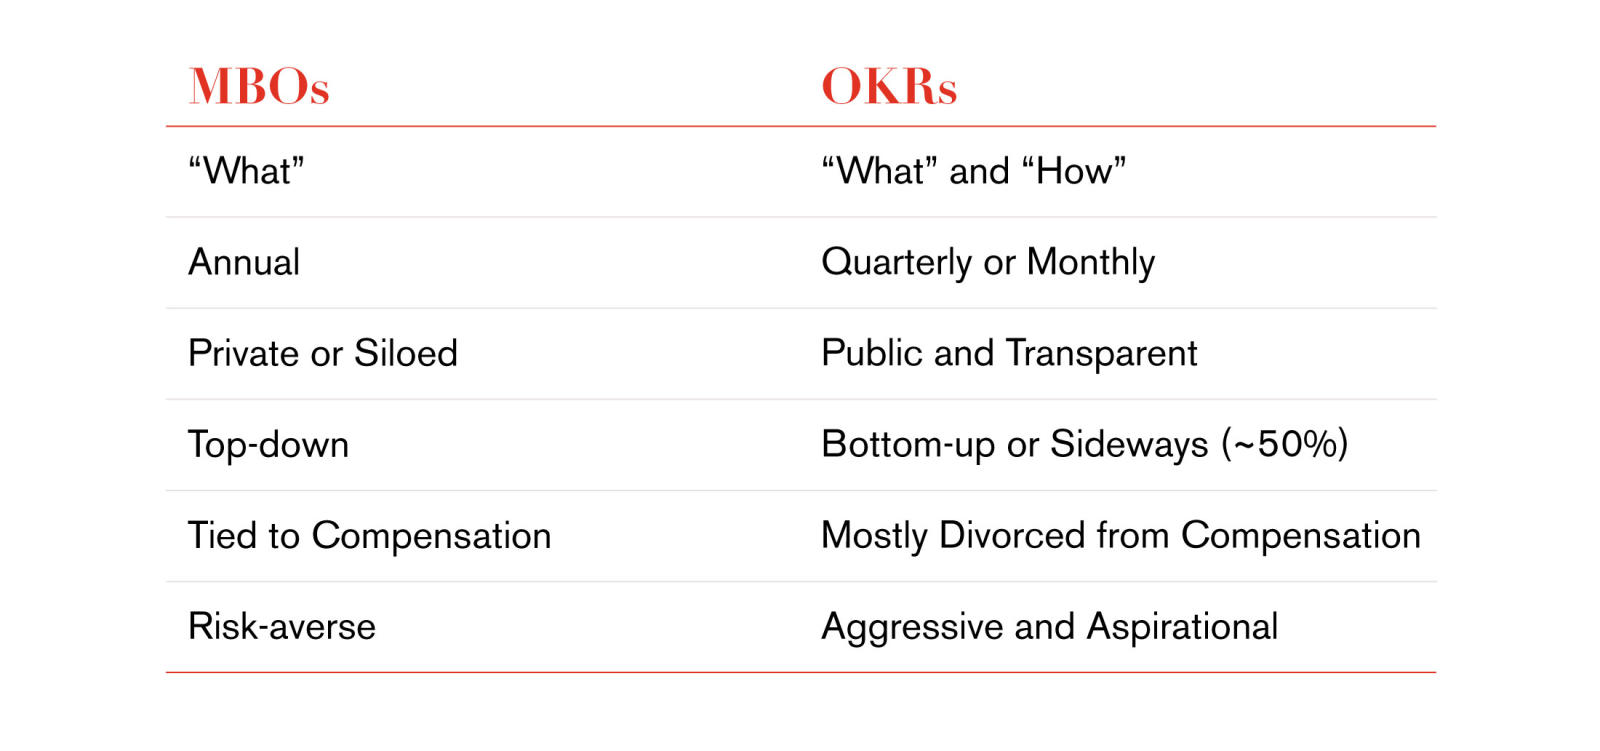 differences between okrs and mbos